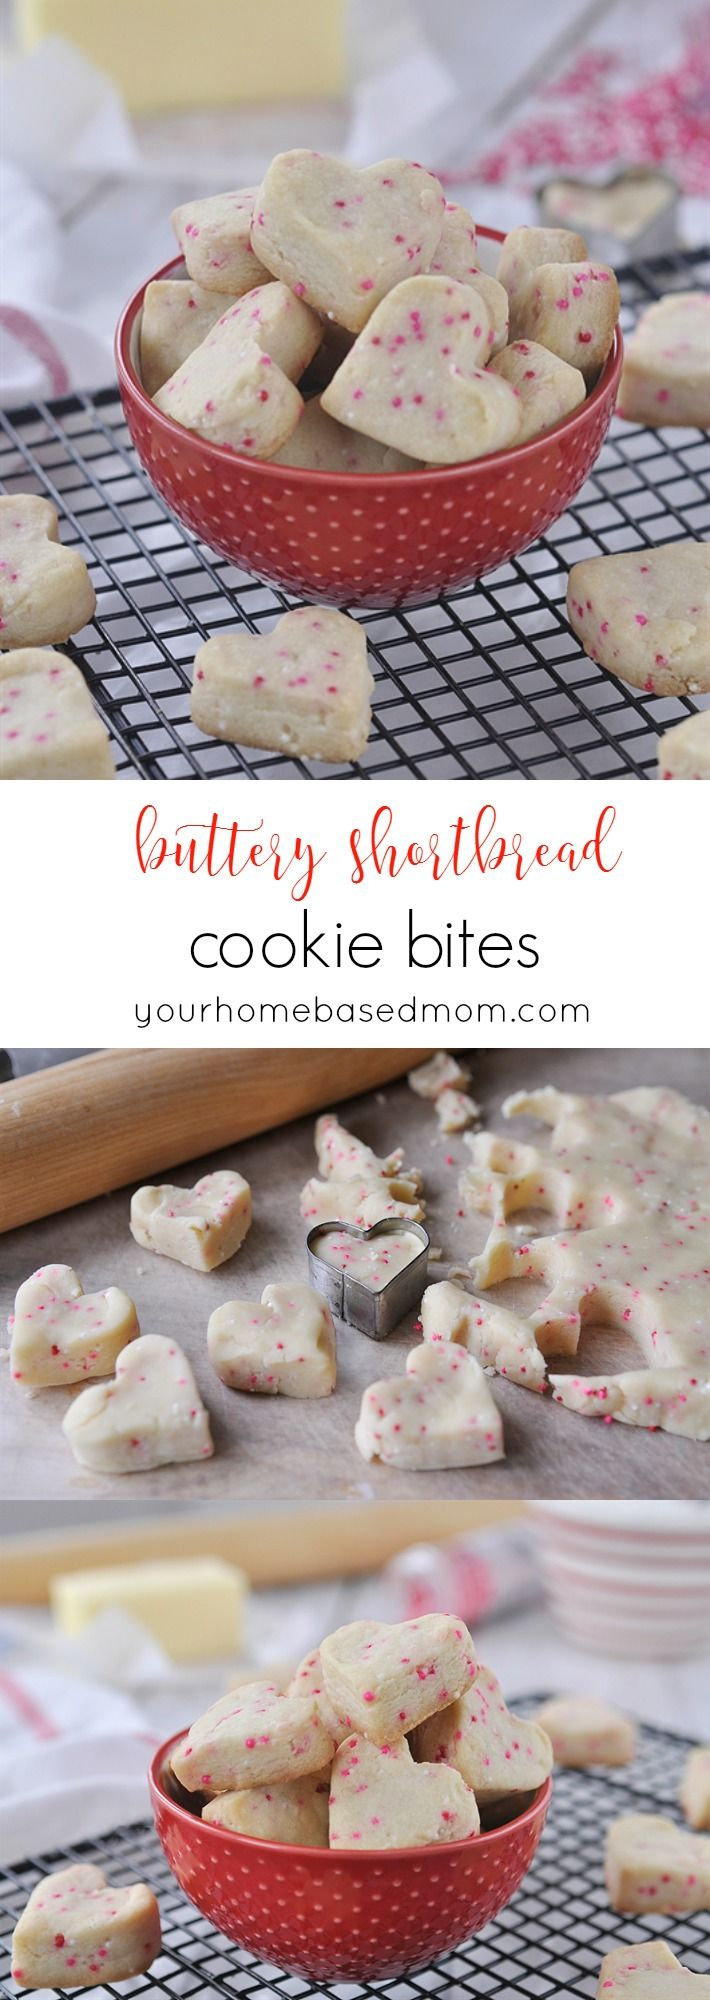 Buttery Shortbread Cookie Bites - cute , sweet and little. Just pop a couple in your mouth!  Perfect for Valentine's Day or any time of year!